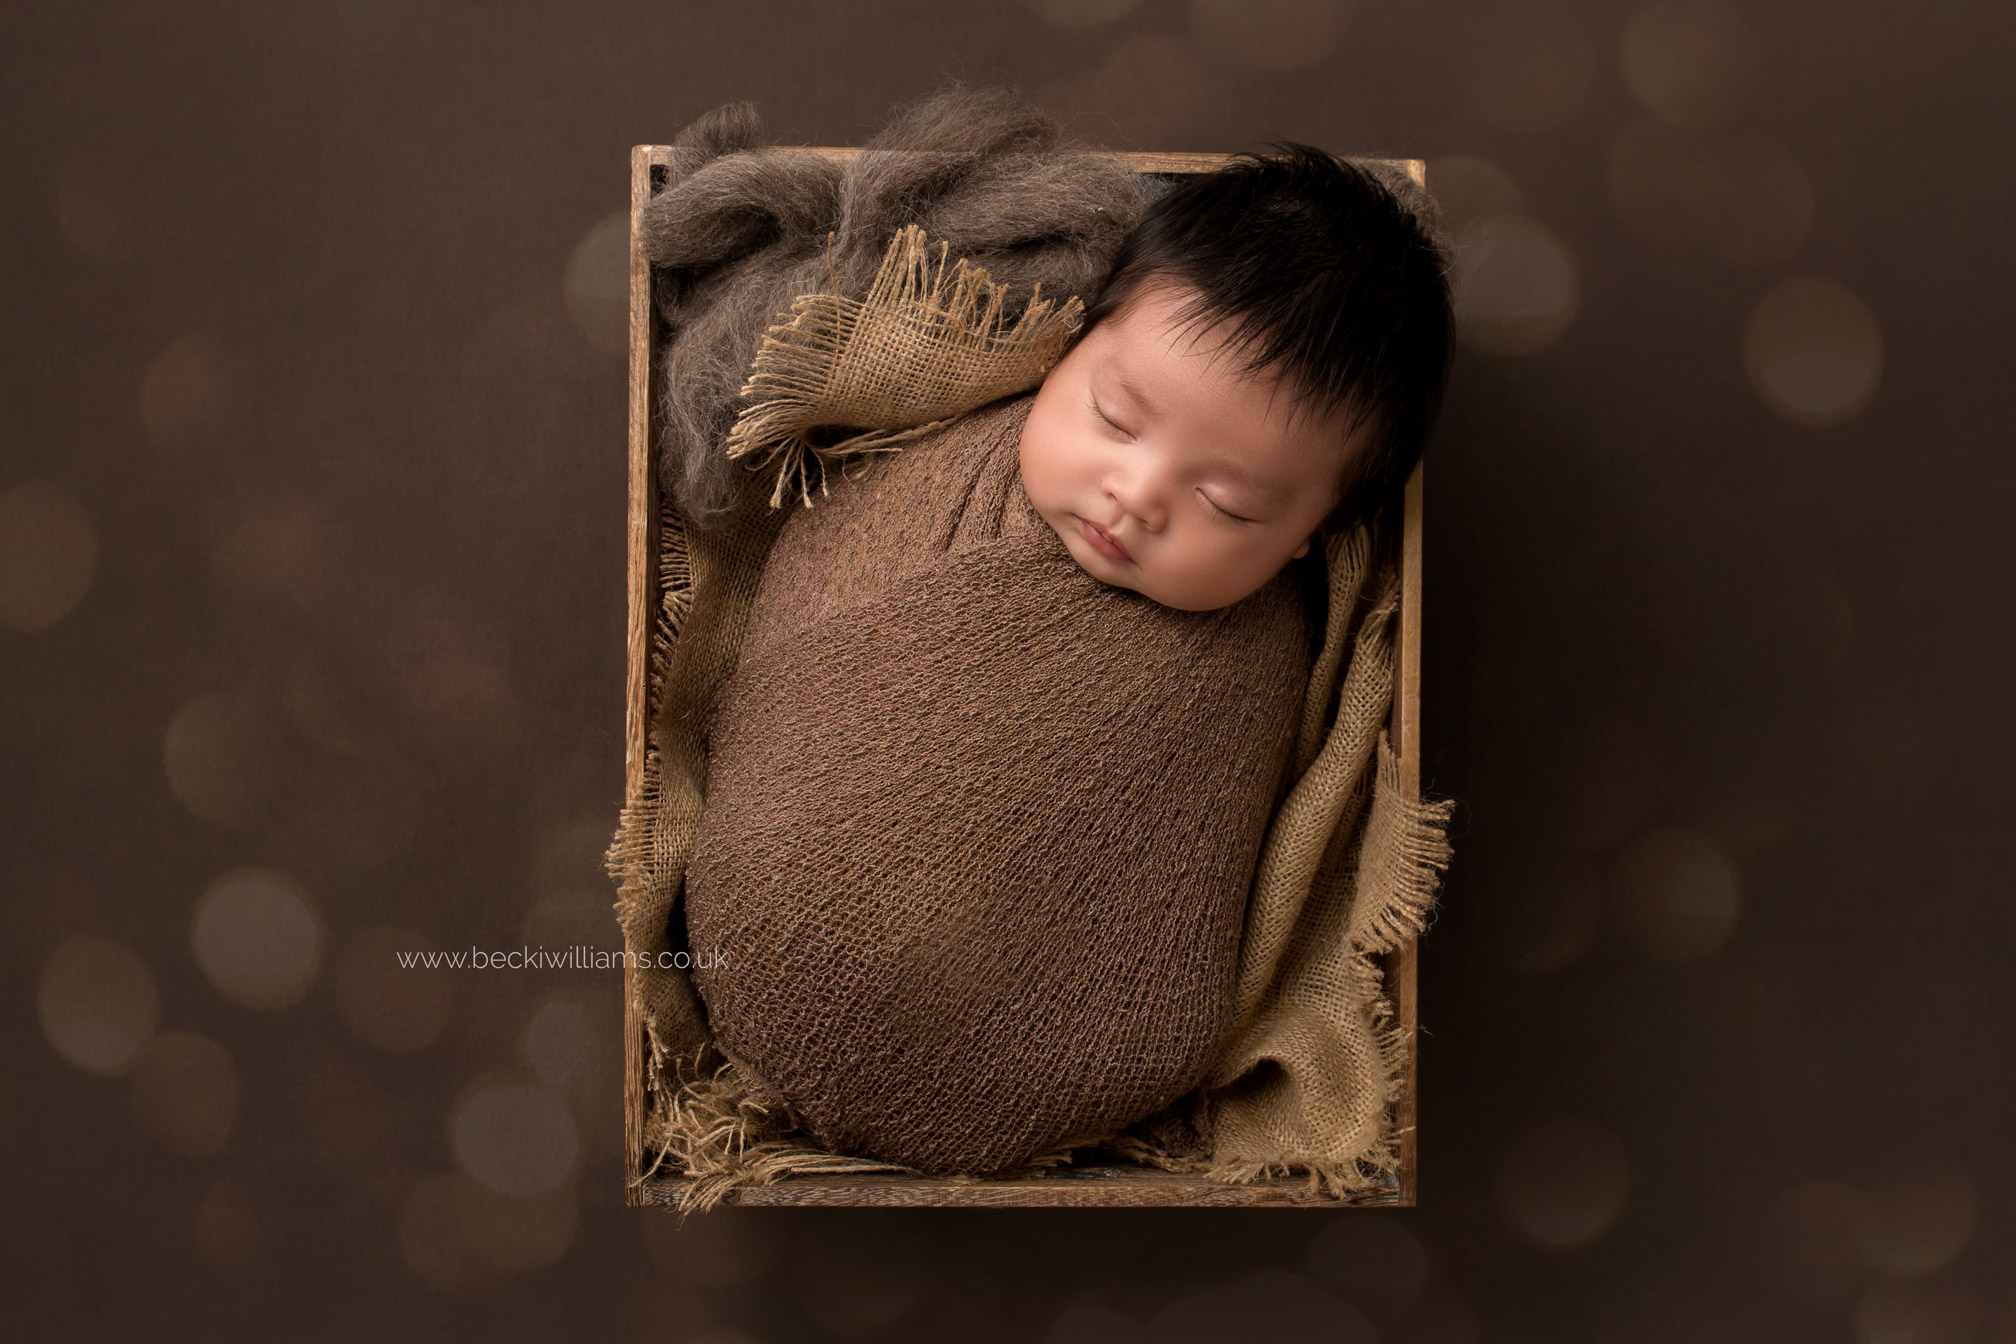 newborn-photography-in-hertfordshire-watford-crate-brown-neutral-beautiful.jpg